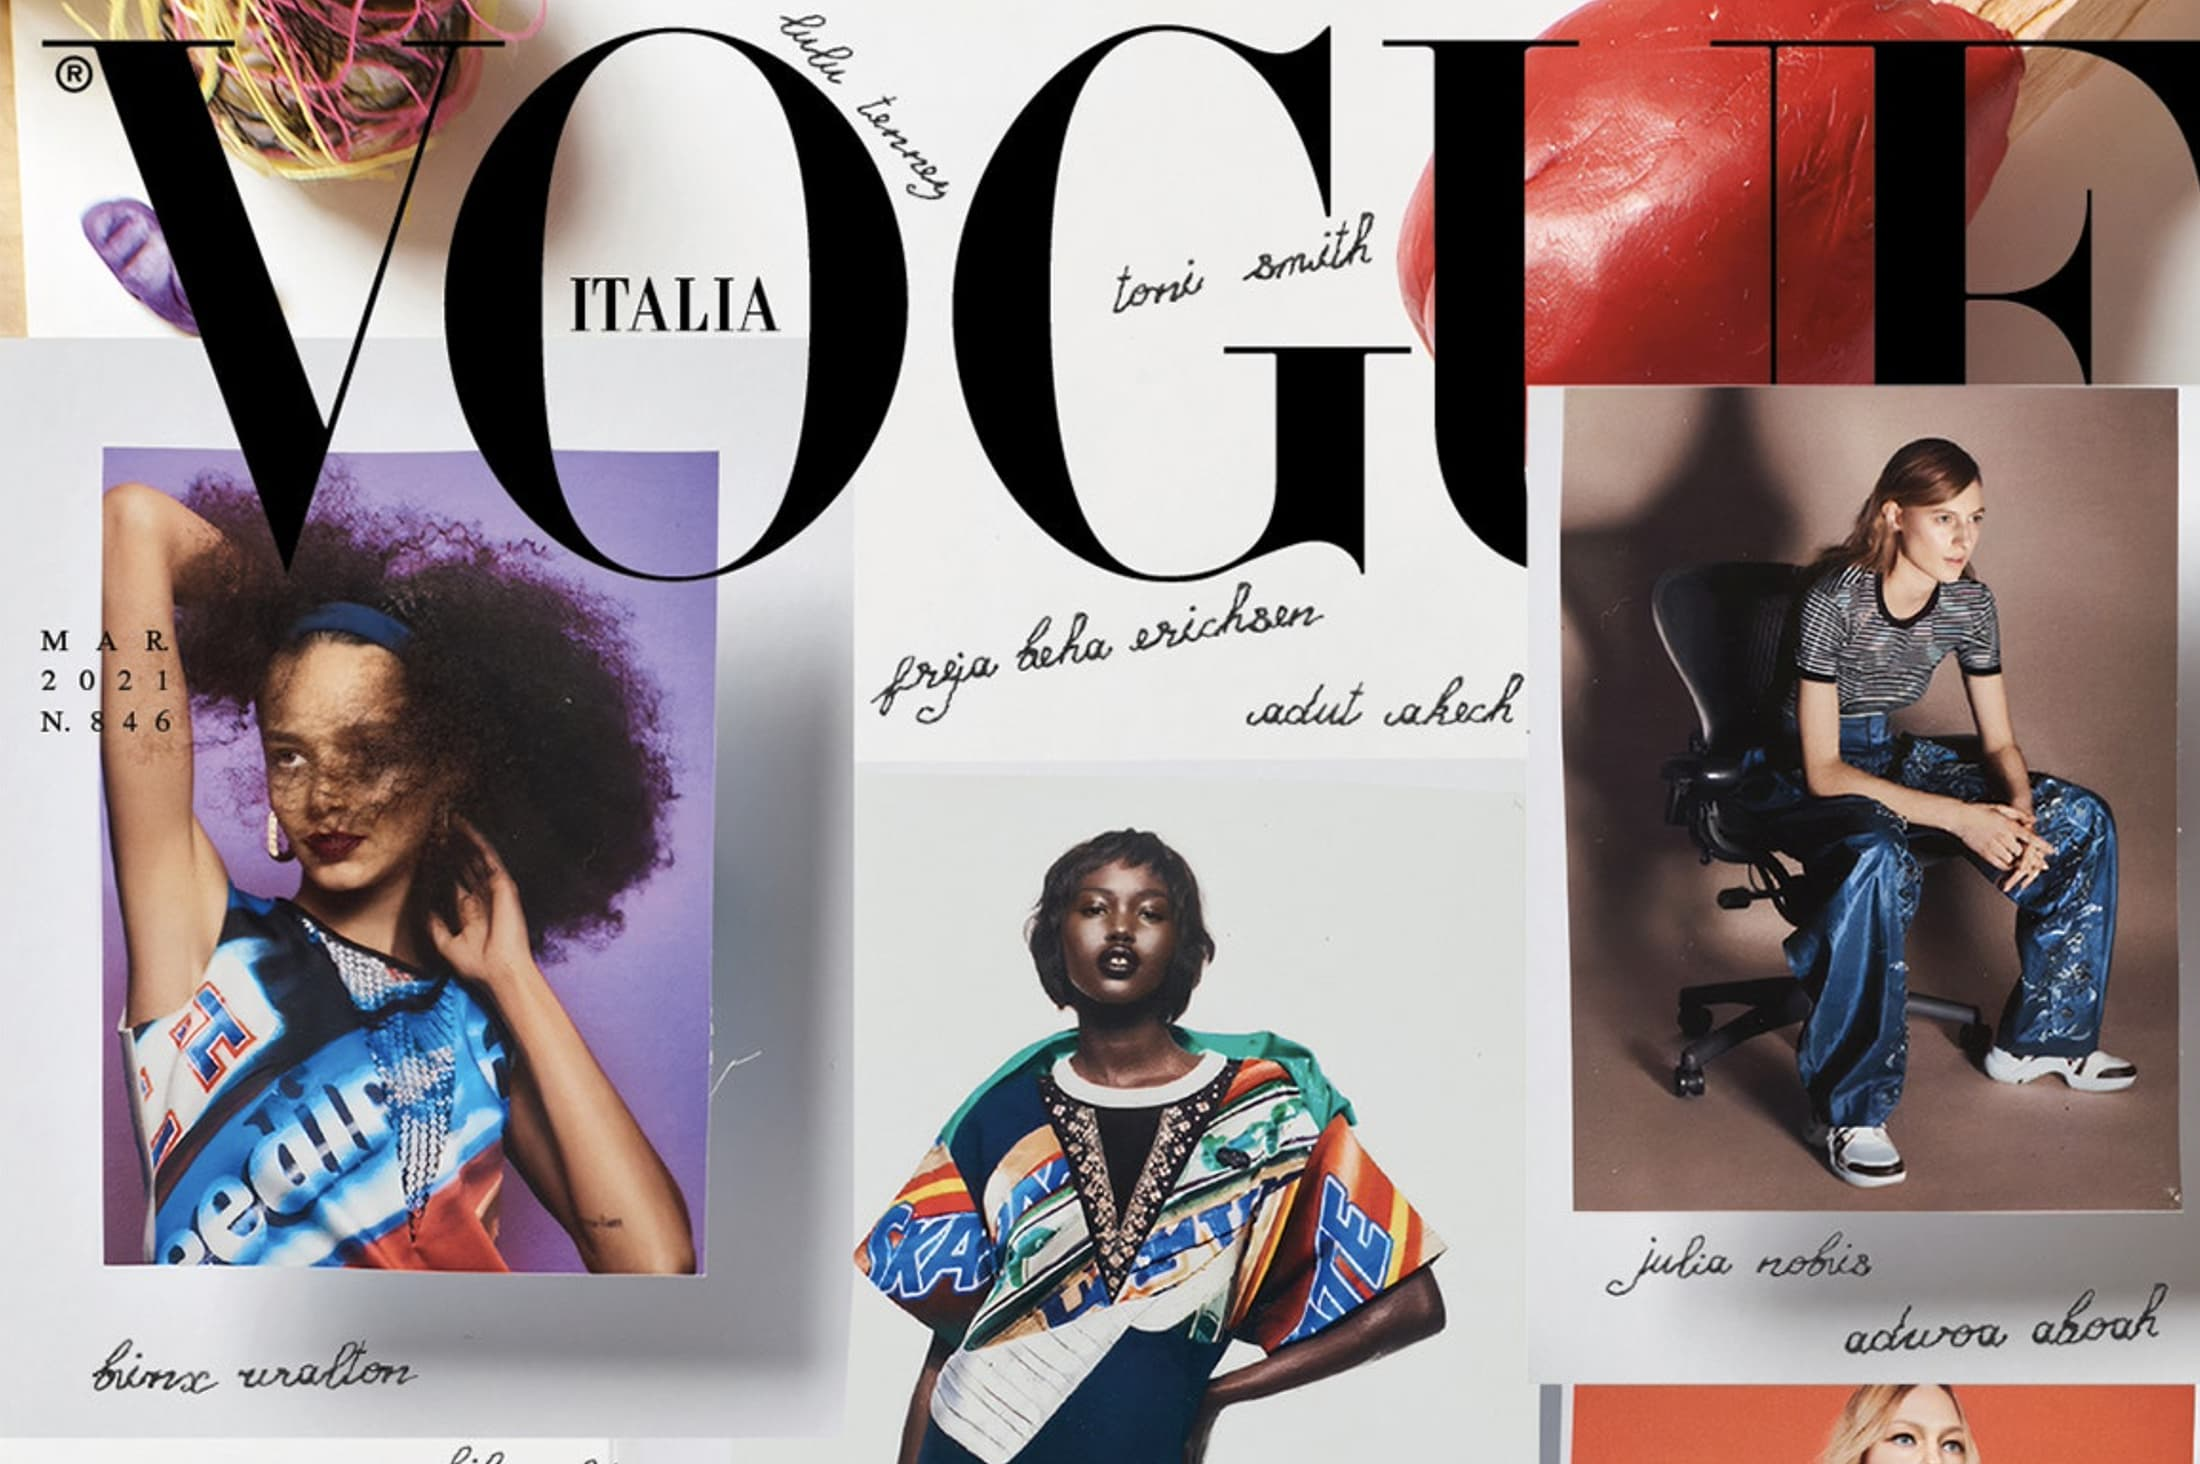 Vogue Italia March 2021 Issue Launches with 49 Artists